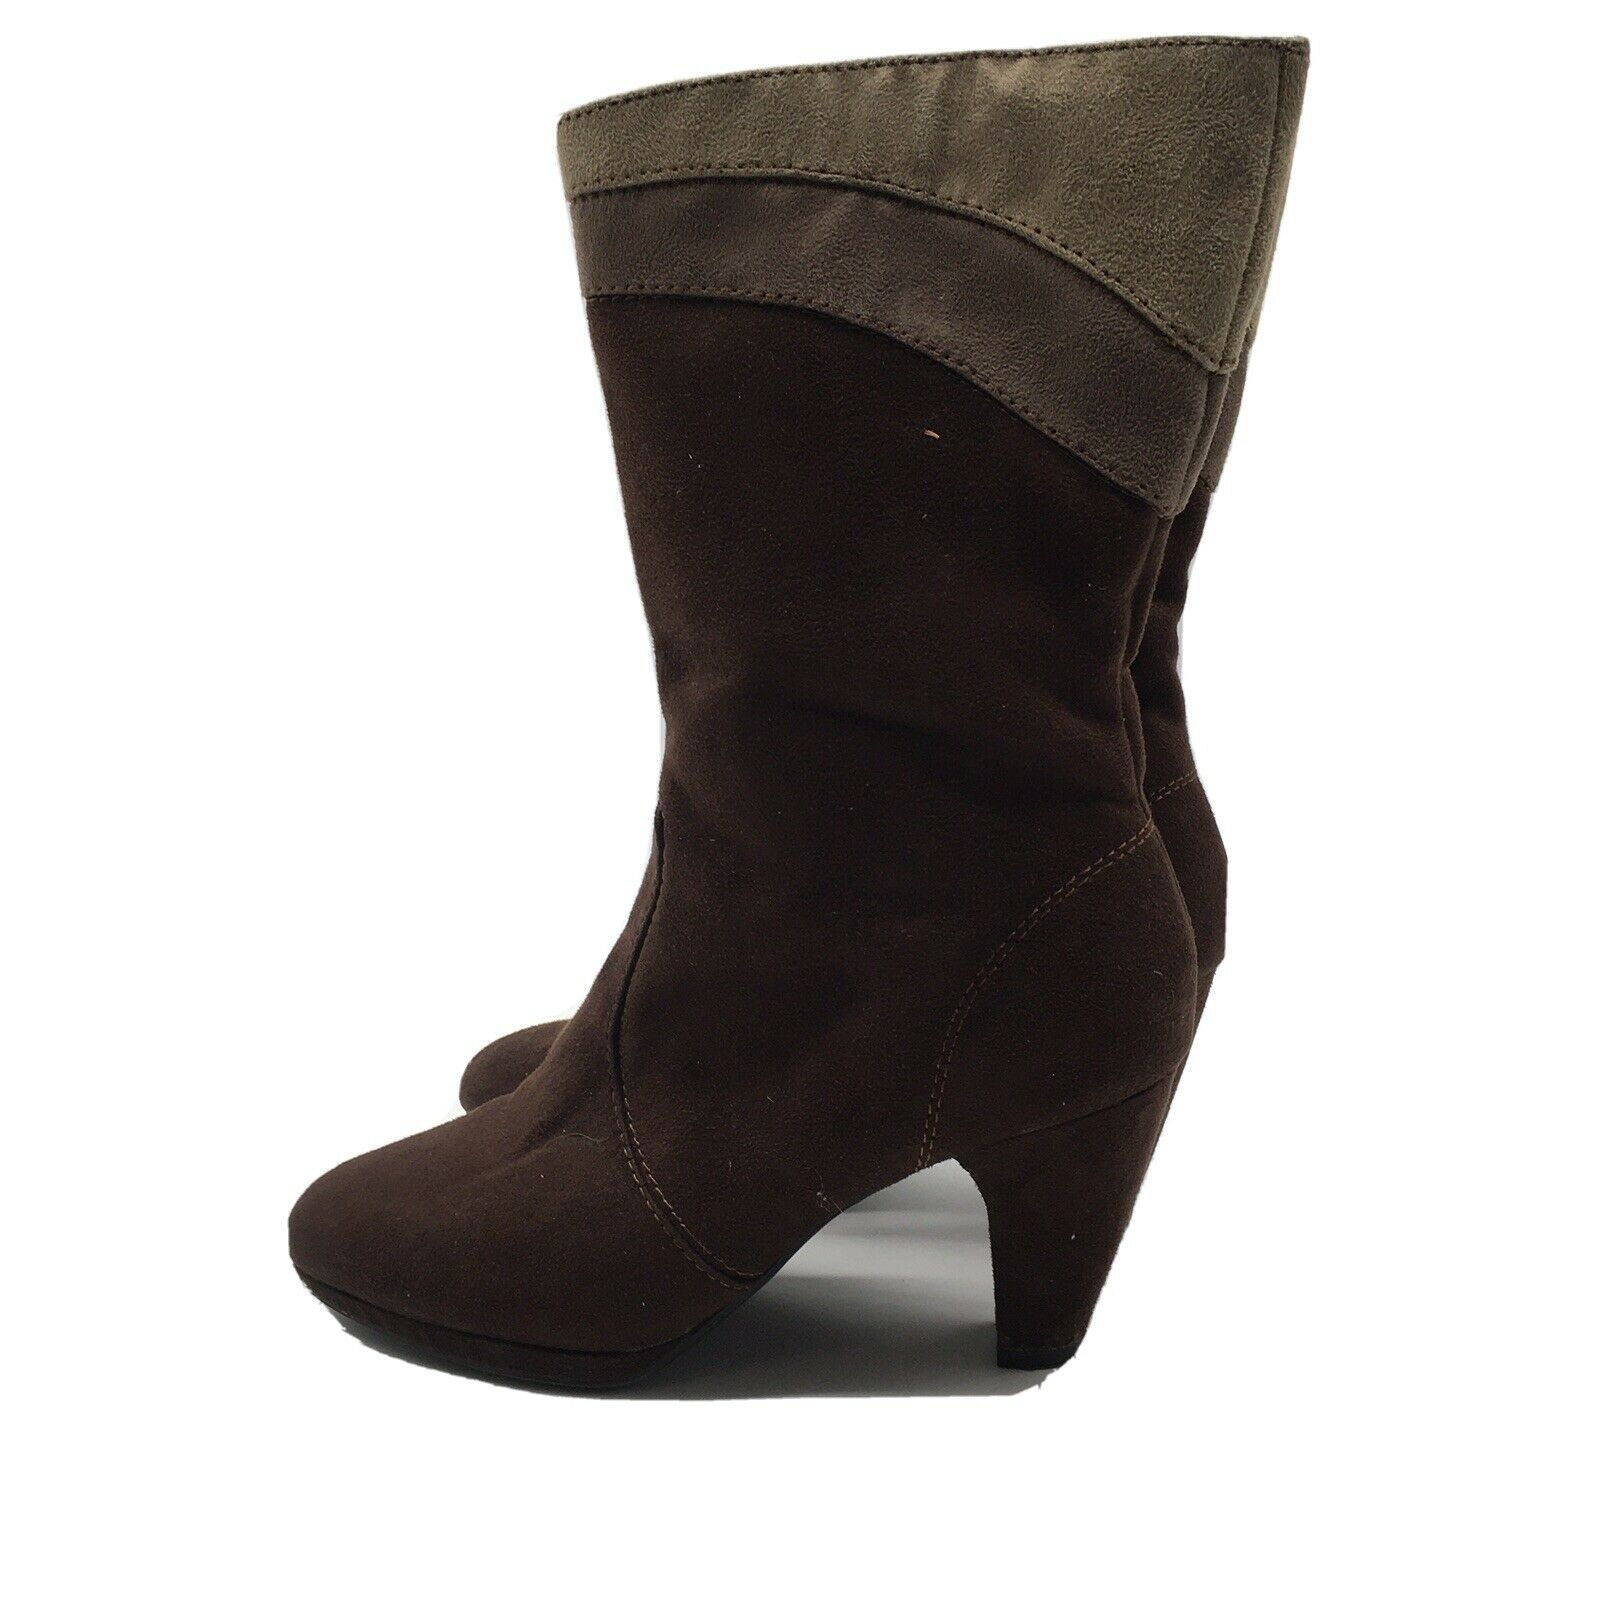 Women's Predictions Brown Boots Very Good Condition Size 7.5